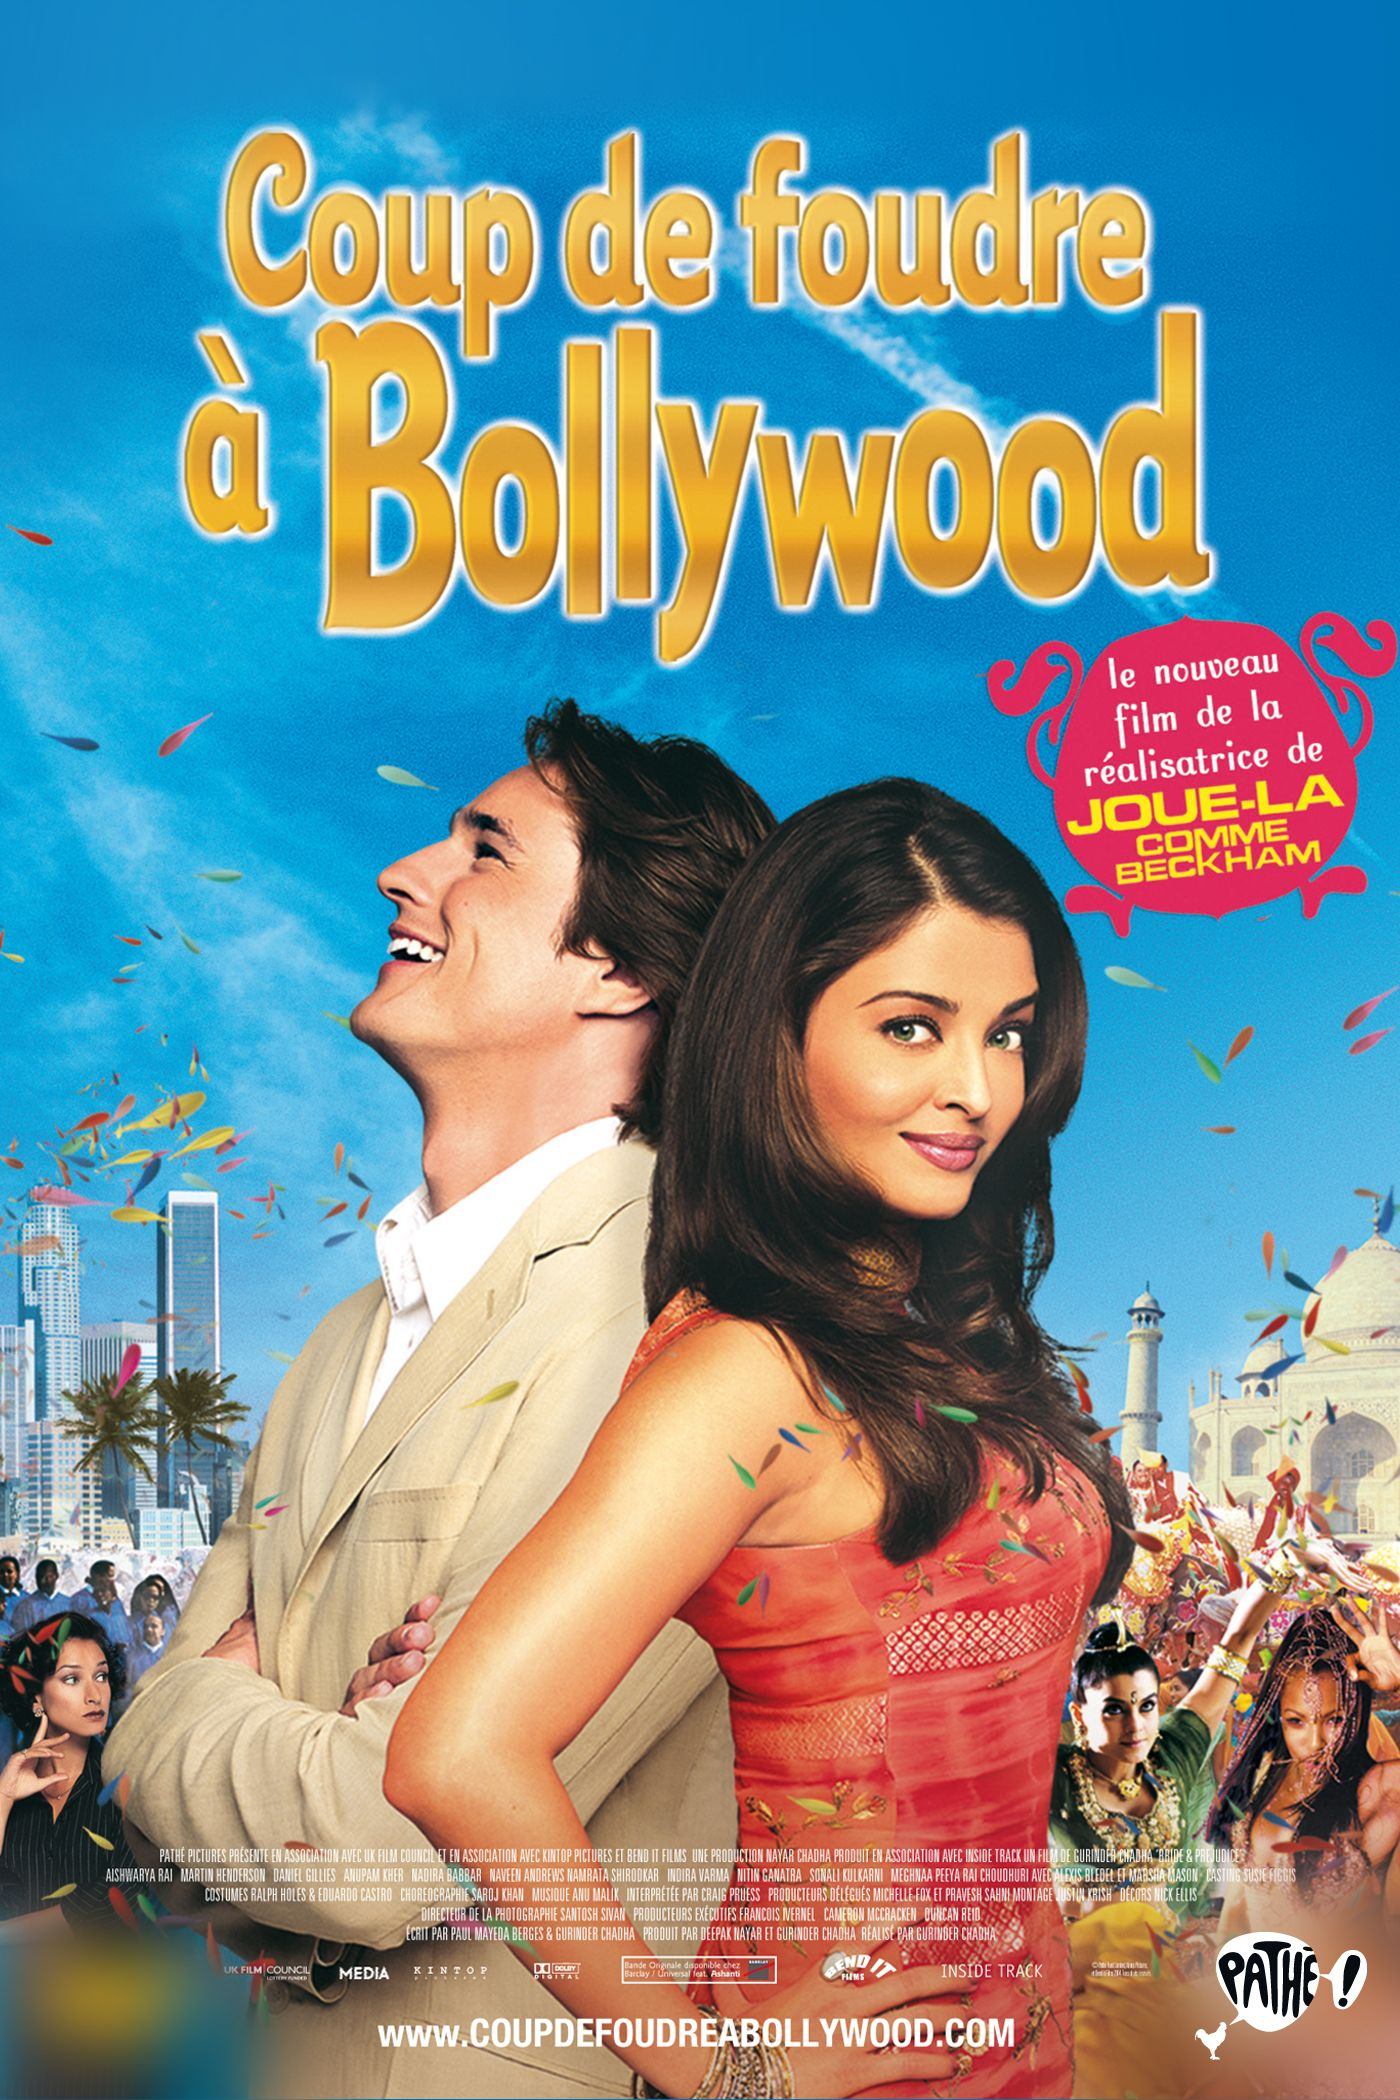 Film coup de foudre bollywood 2004 en streaming cin ma pinterest bollywood coup de - En coup de vamp streaming ...